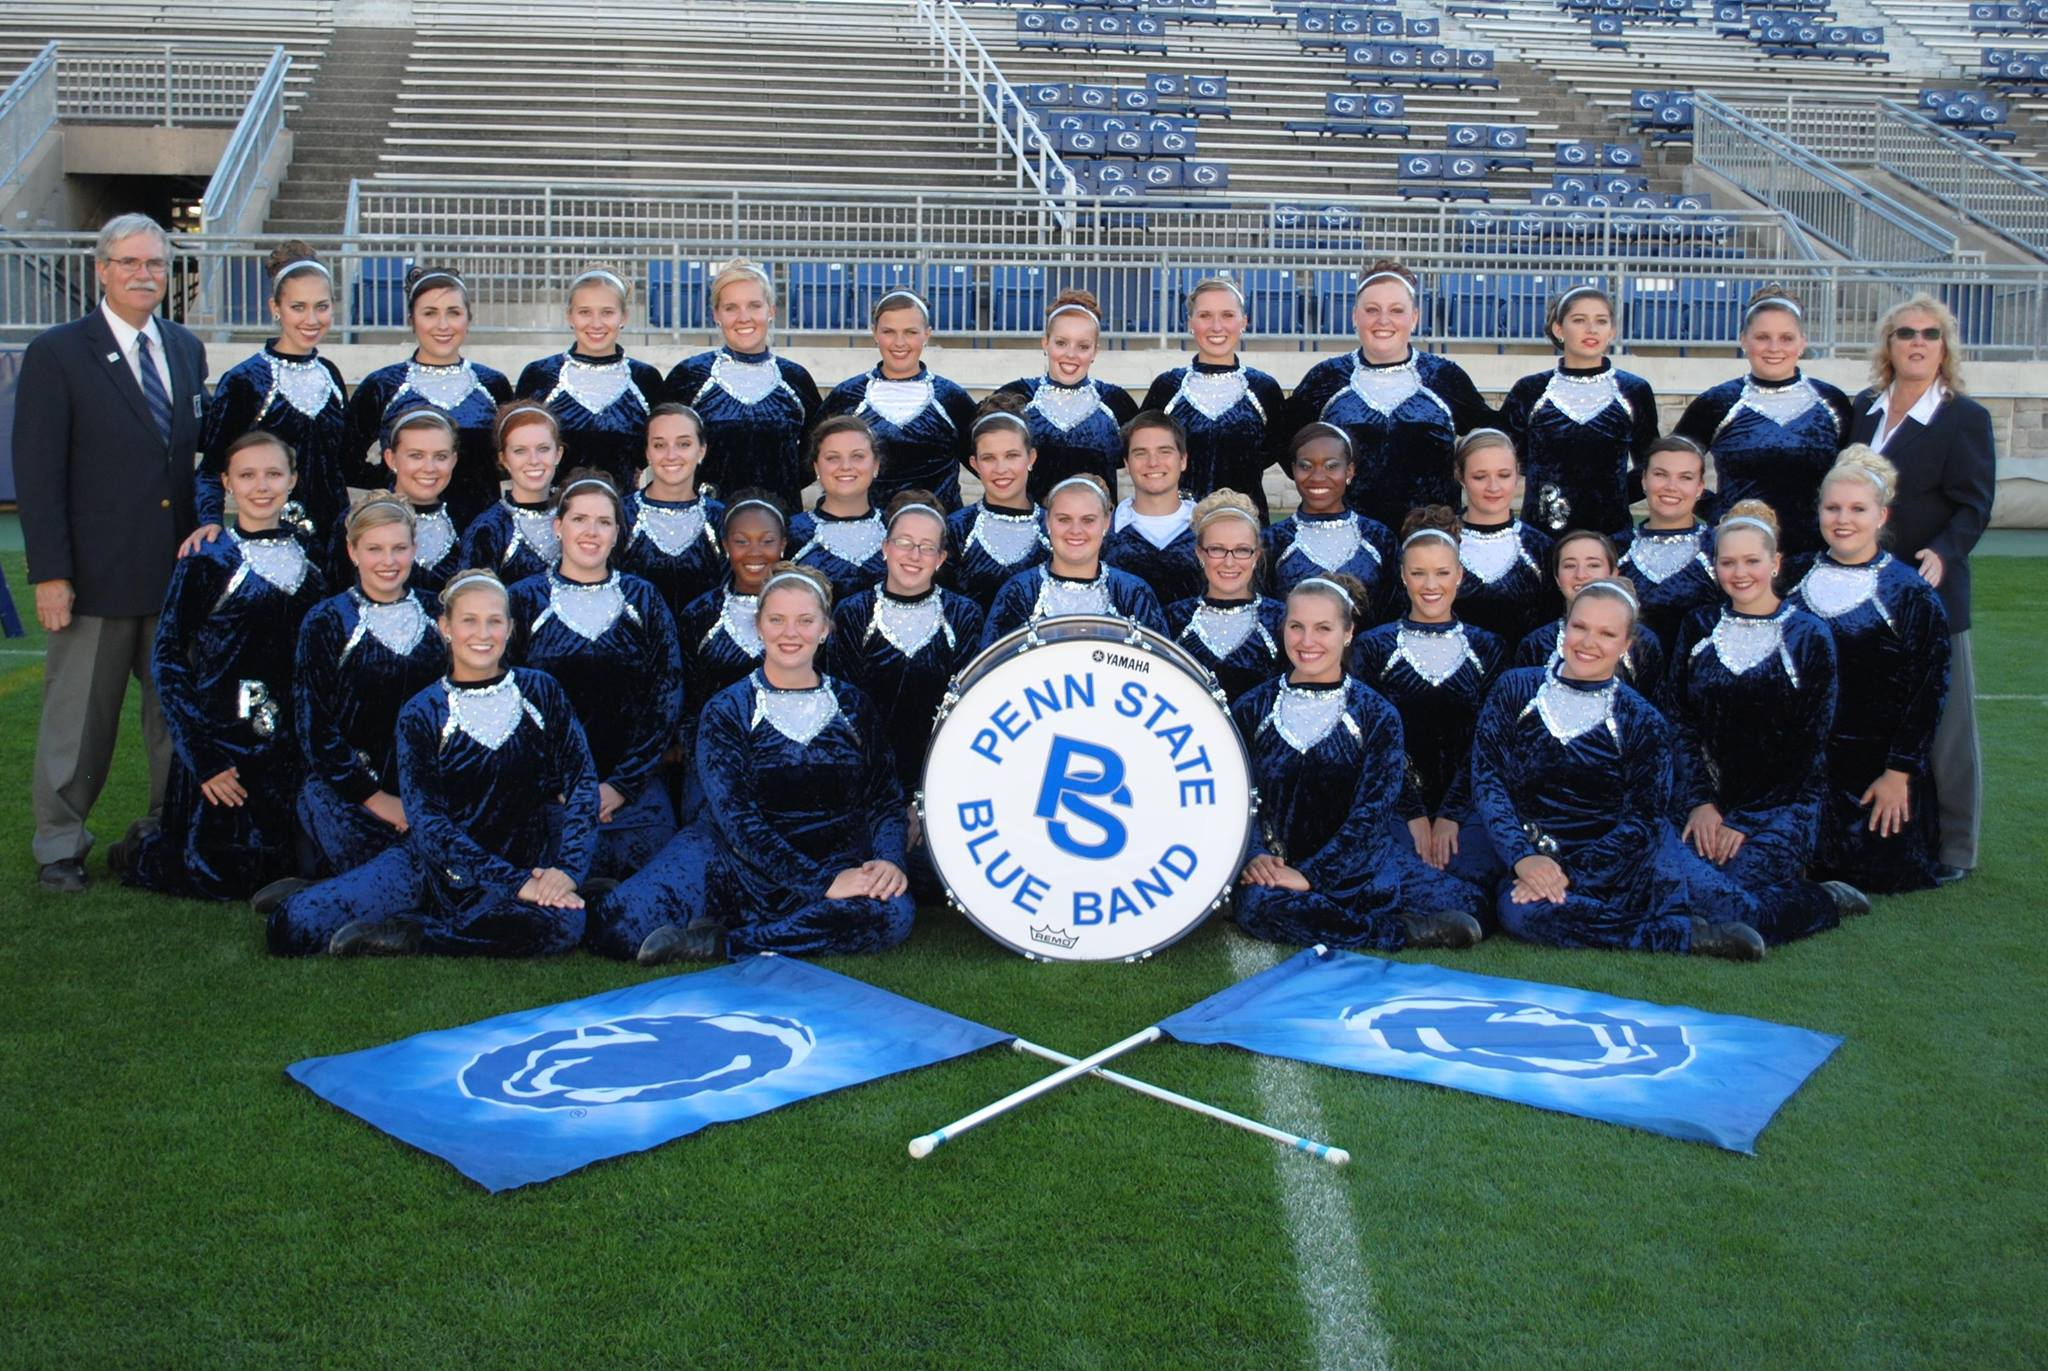 Hscg Bbs Council Rock High School North Color Guard Of 15 S Verses Penn State Blue